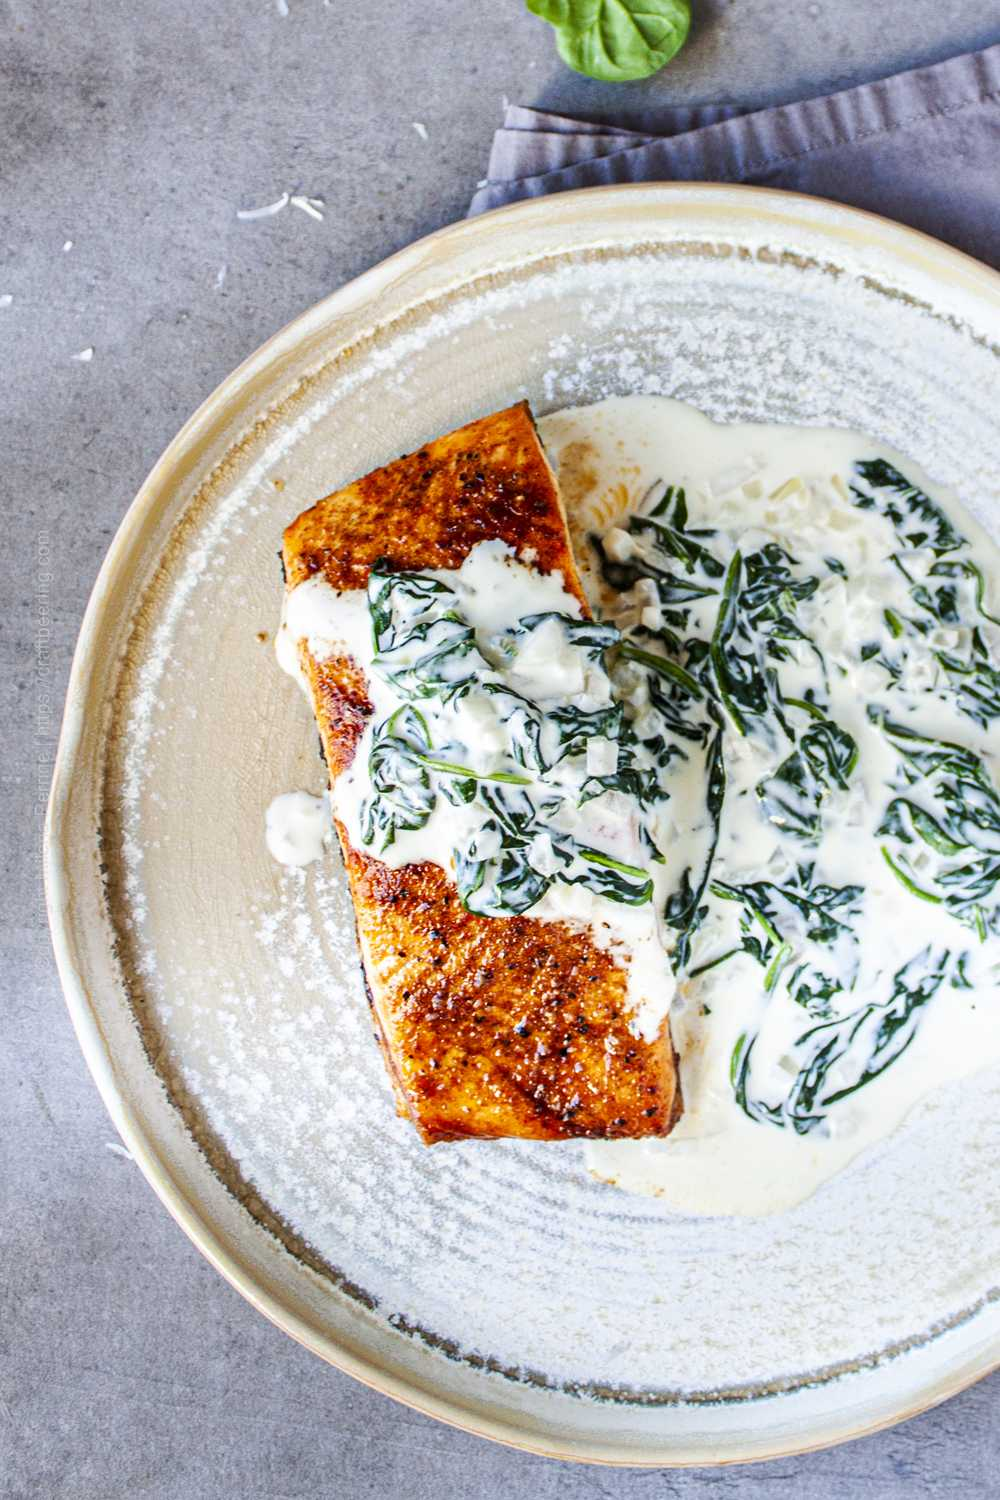 Pan seared salmon fillet topped with creamy spinach sauce.